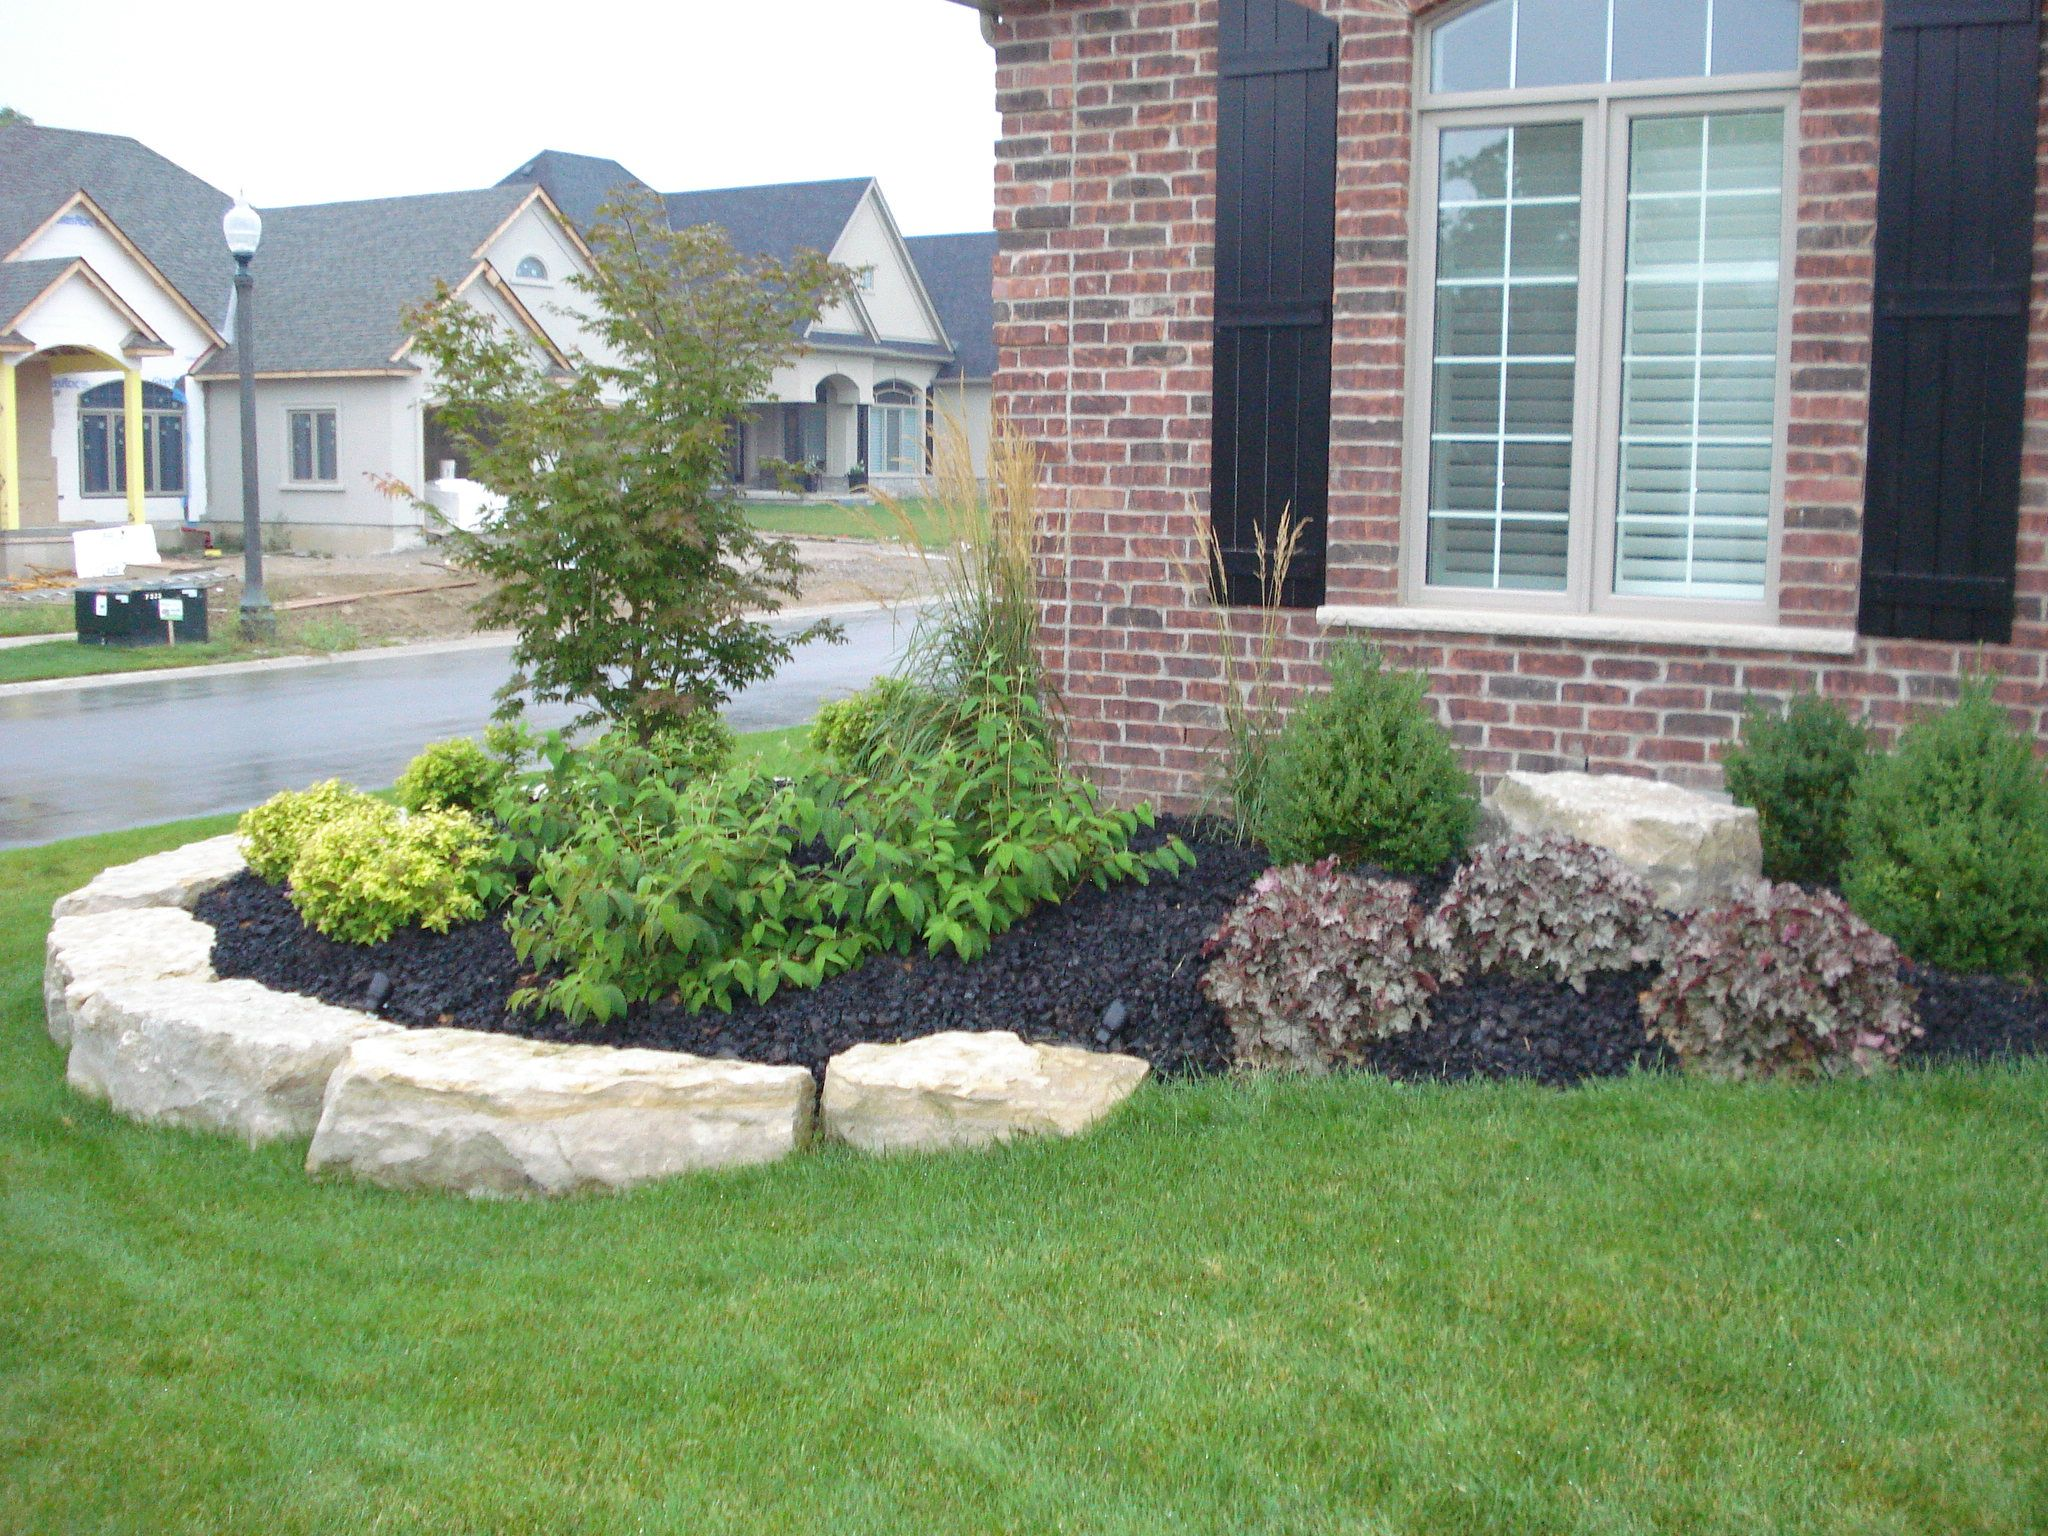 front flower bed landscaping ideas how much does landscaping improve home value resolution. Black Bedroom Furniture Sets. Home Design Ideas